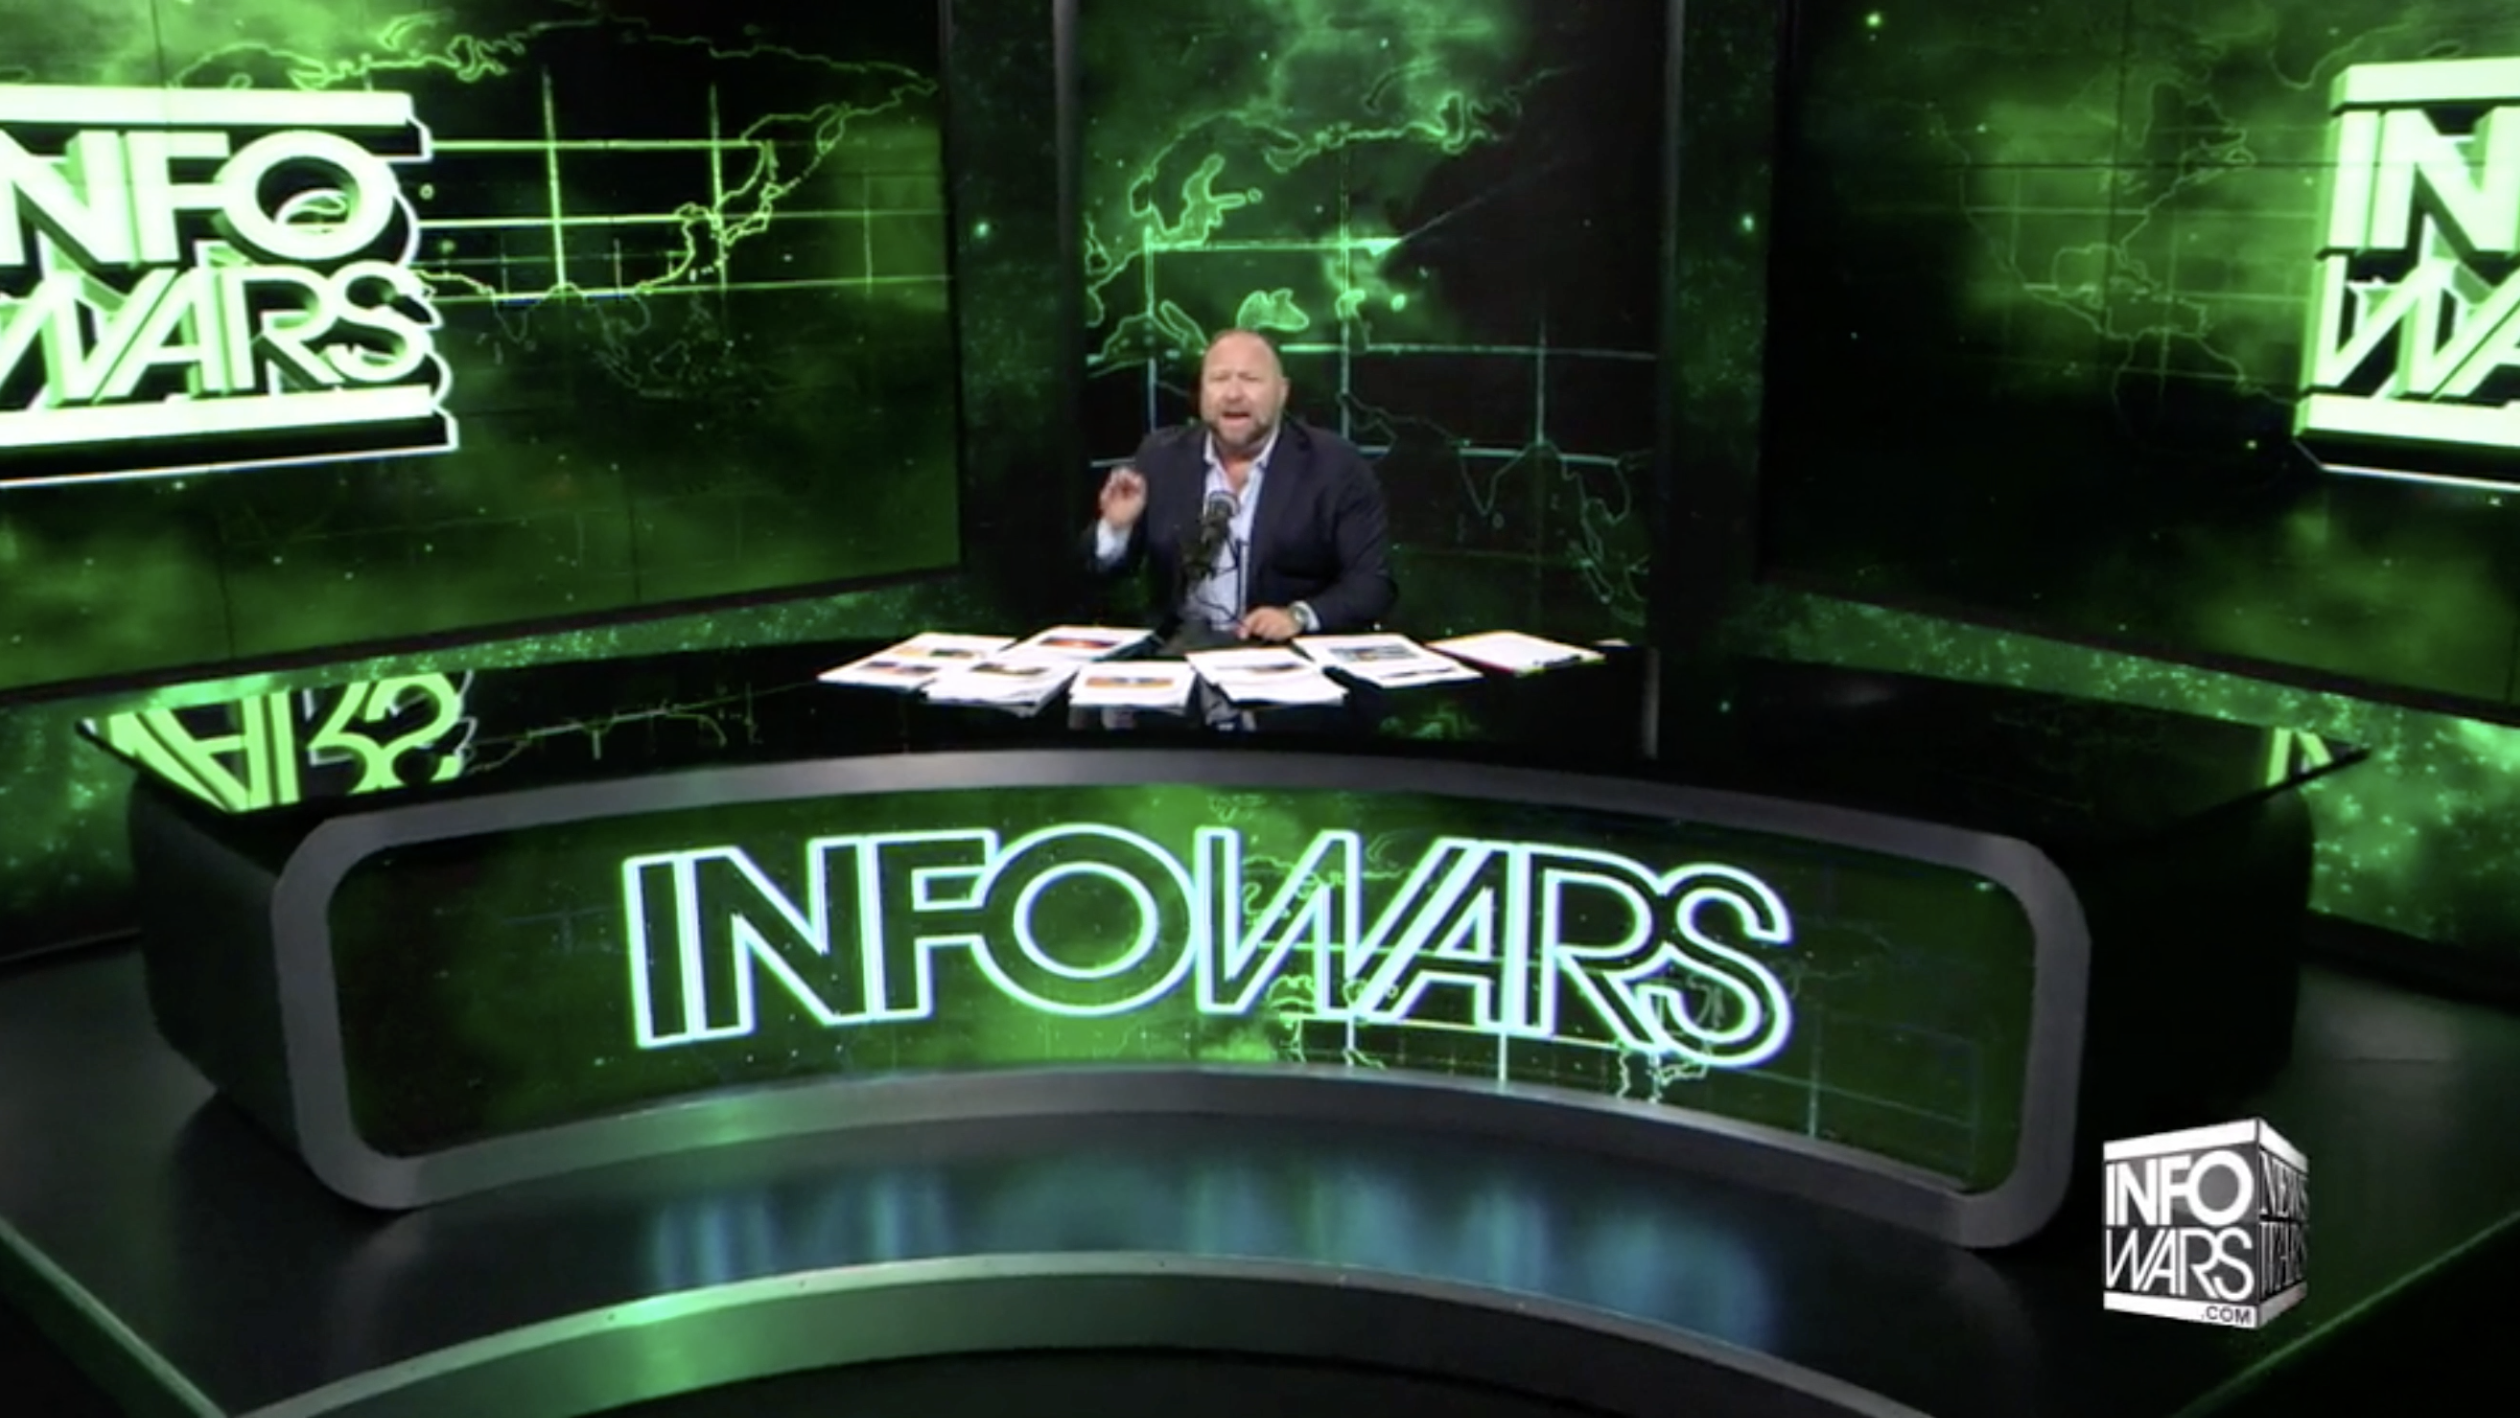 Alex Jones Infowars Studio EXZM September 2nd 2020 copy